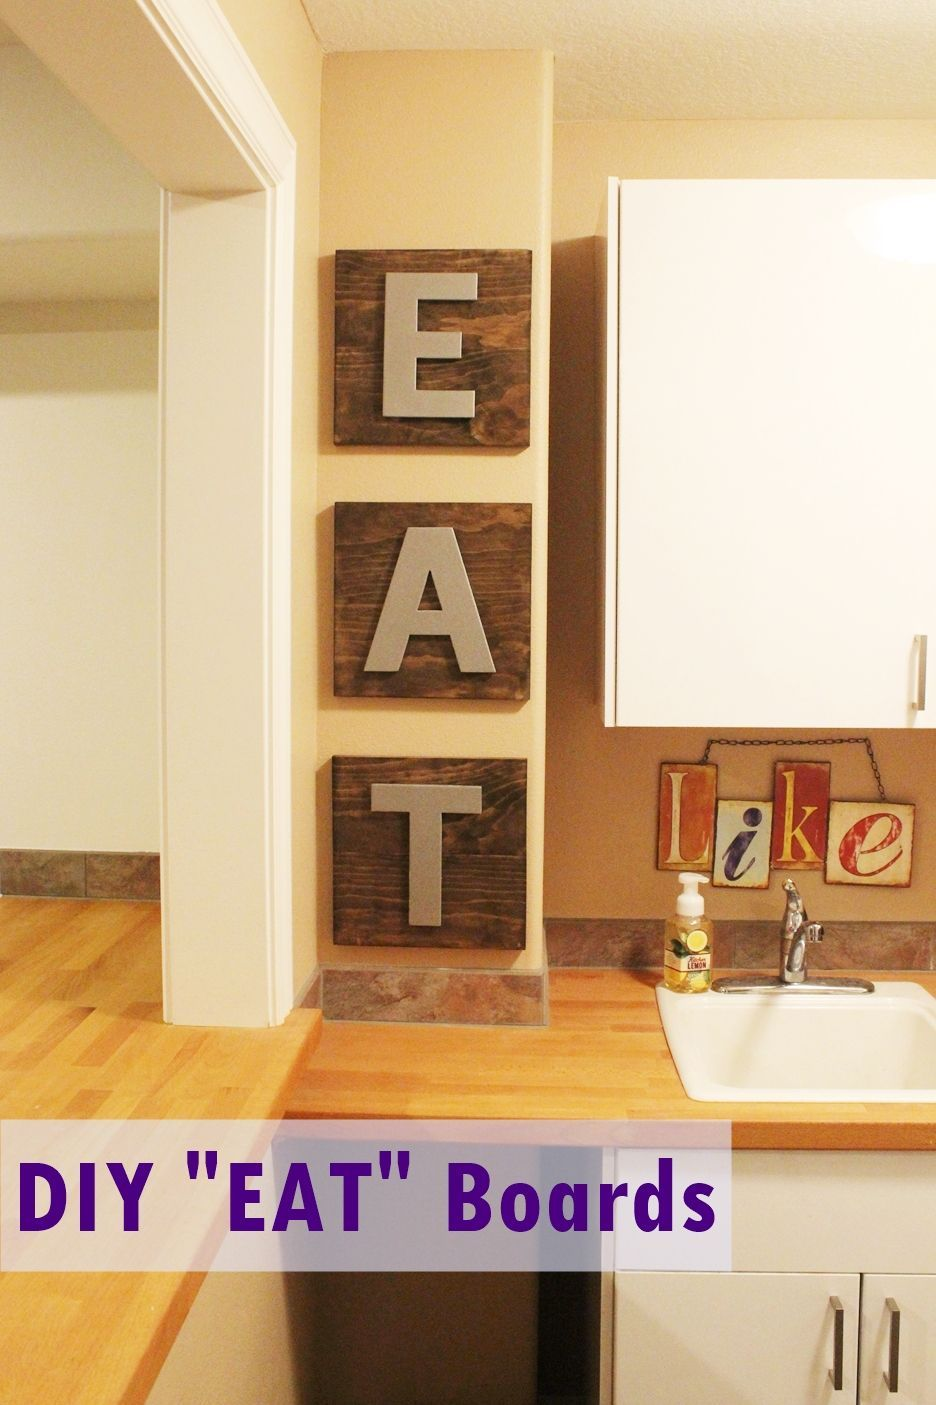 Kitchen Decor Diy Kitchen Décor Eat Boards